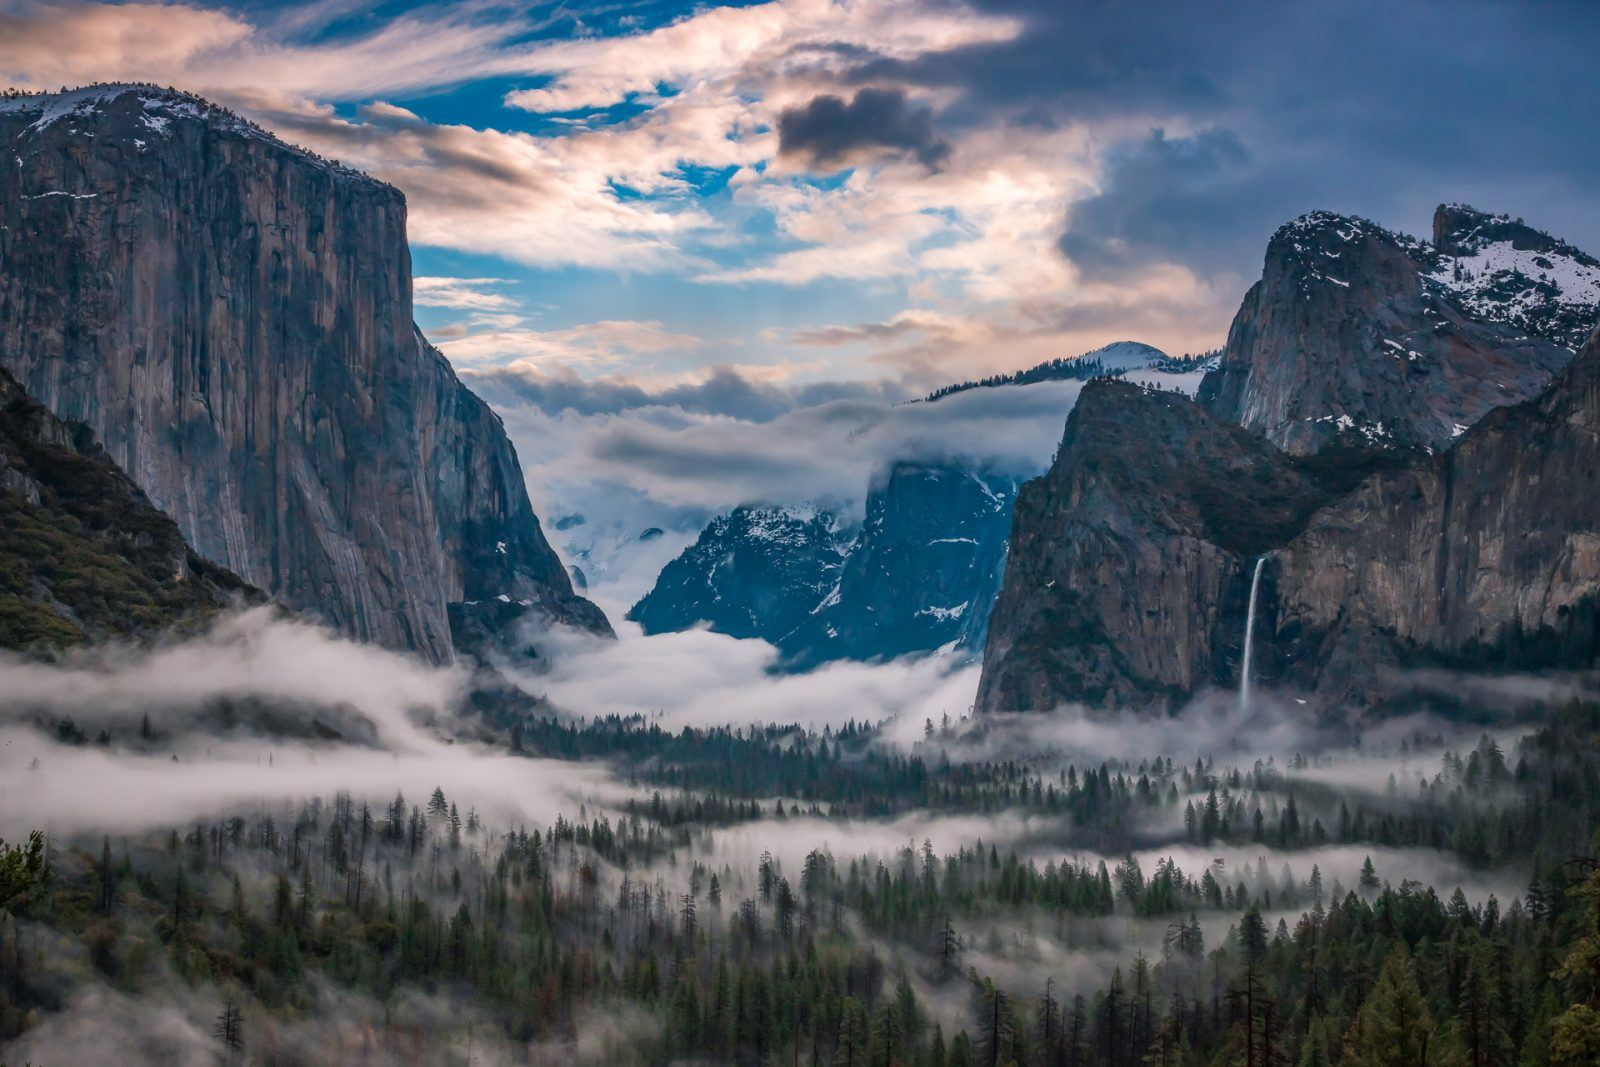 Foggy Morning in the Yosemite Valley